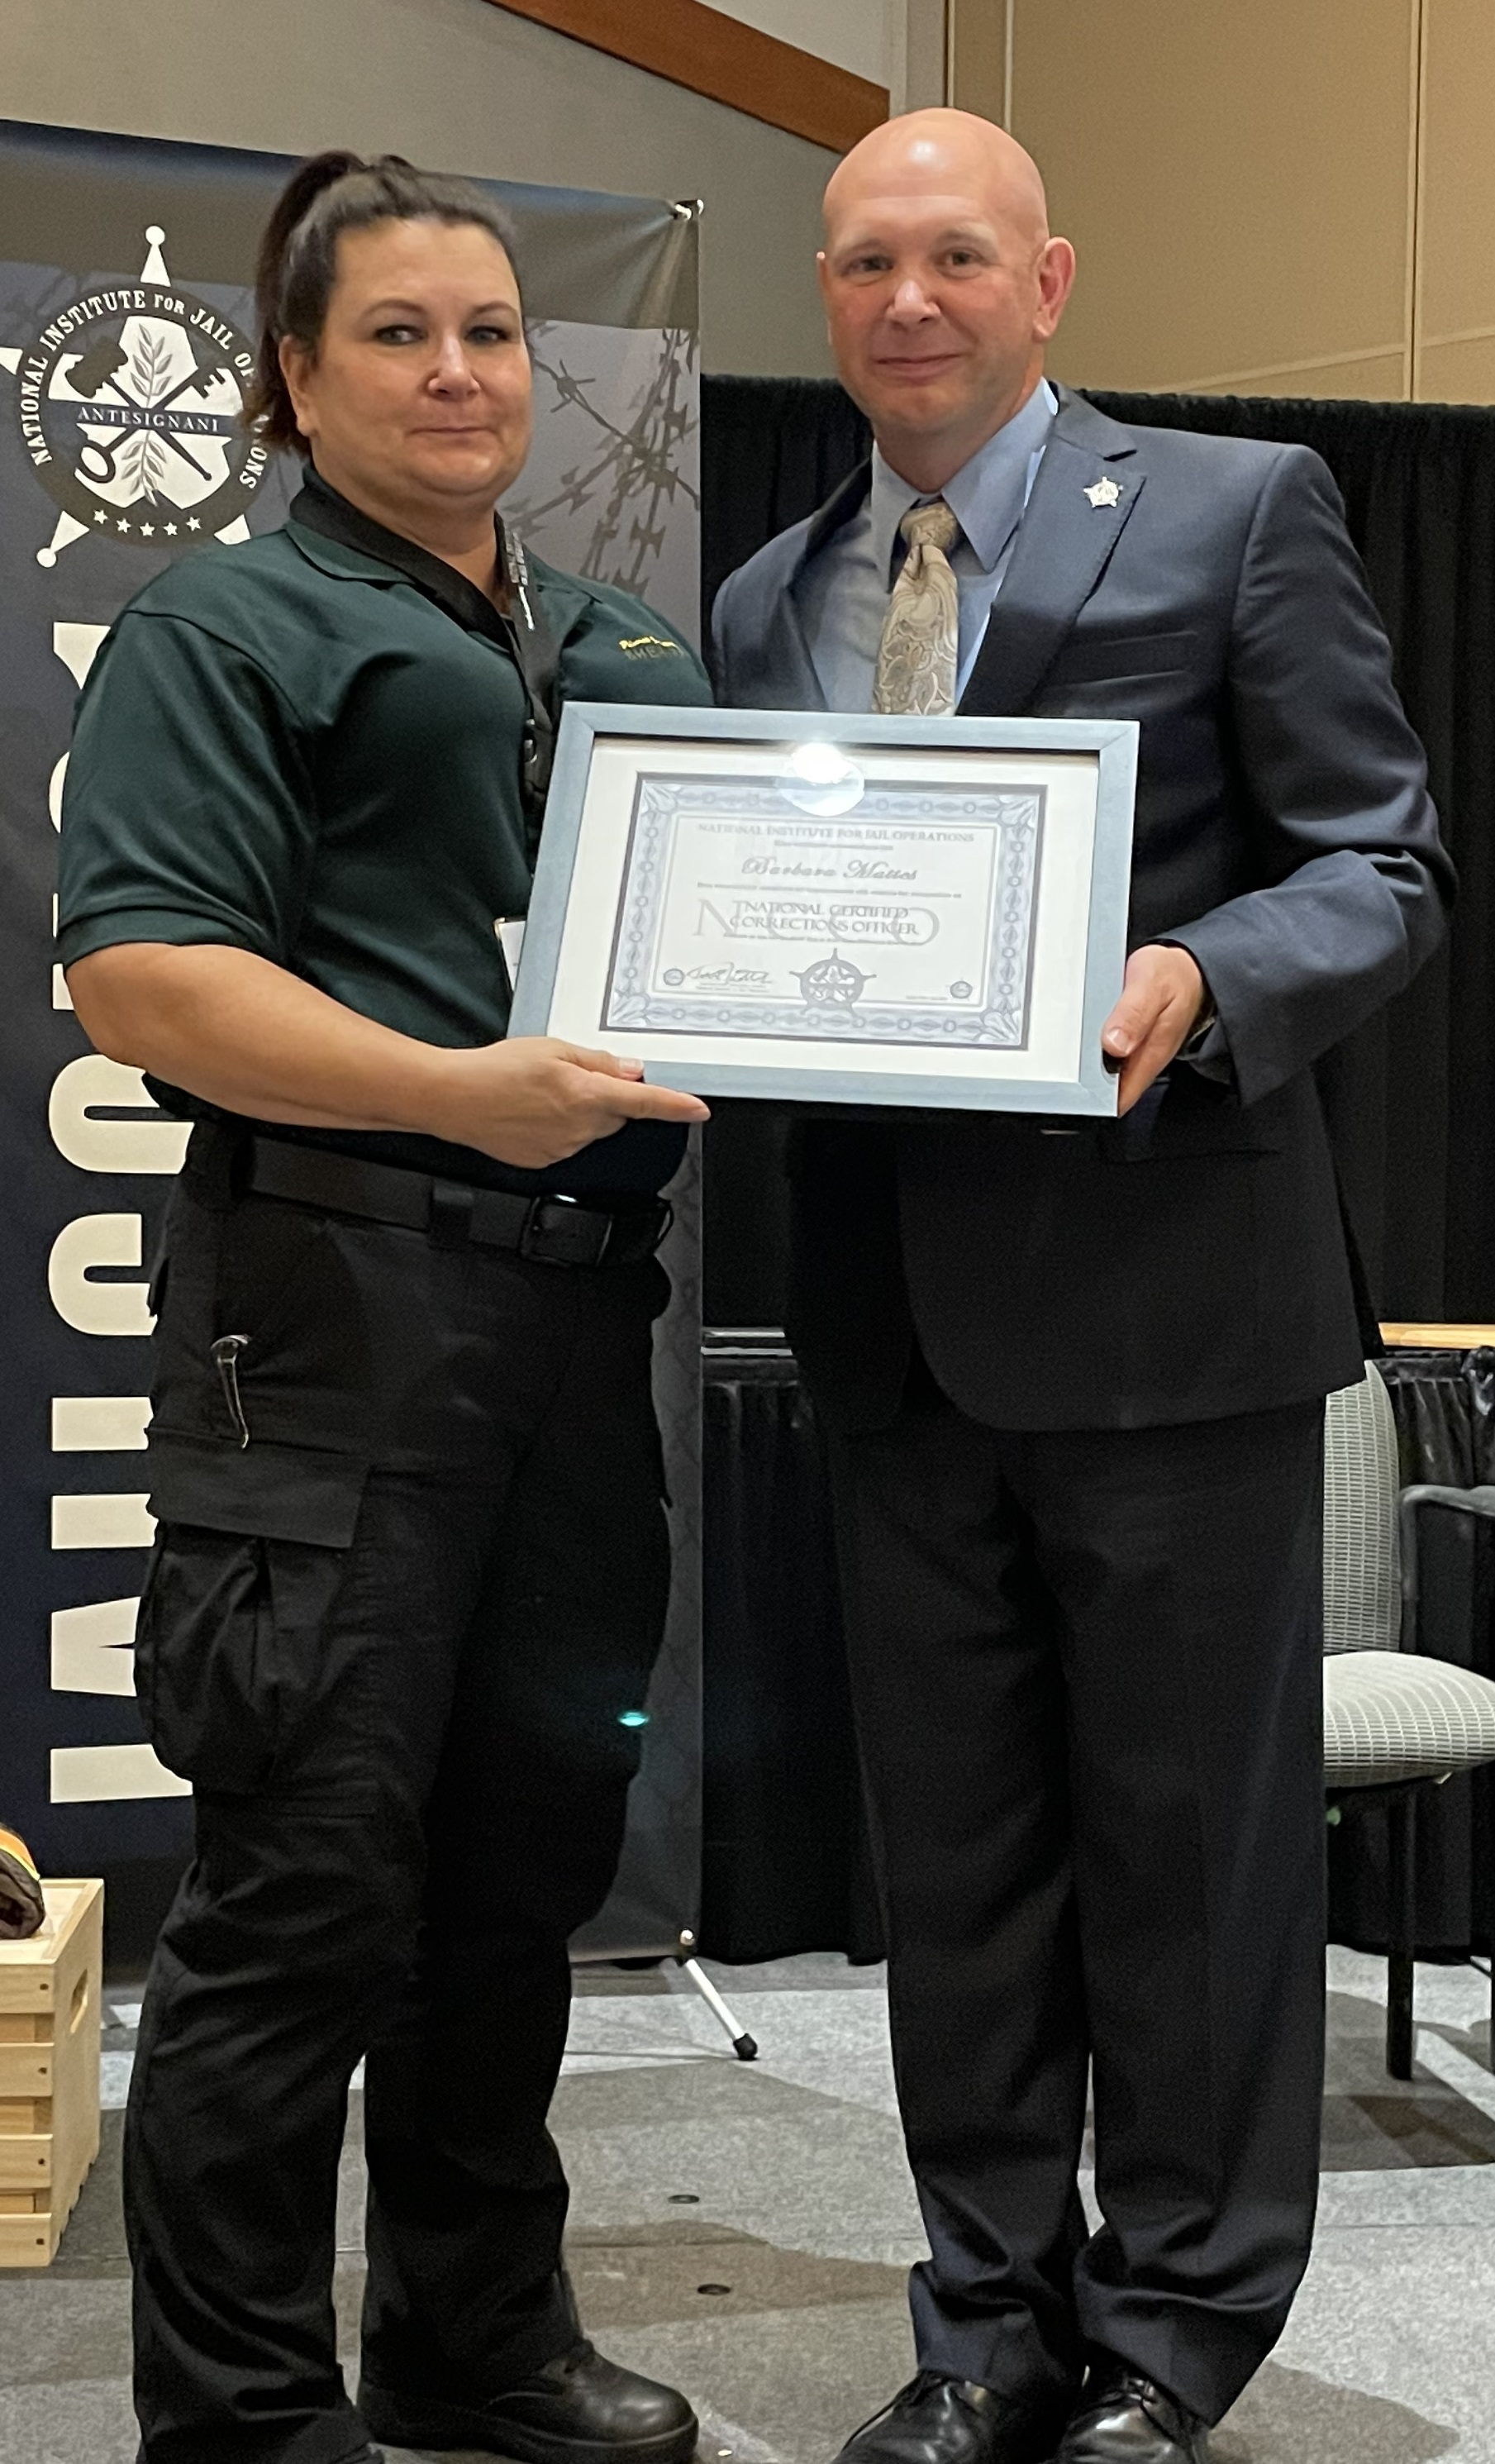 National Certified Corrections Officer_Pima County Sheriff's Office_Mattes